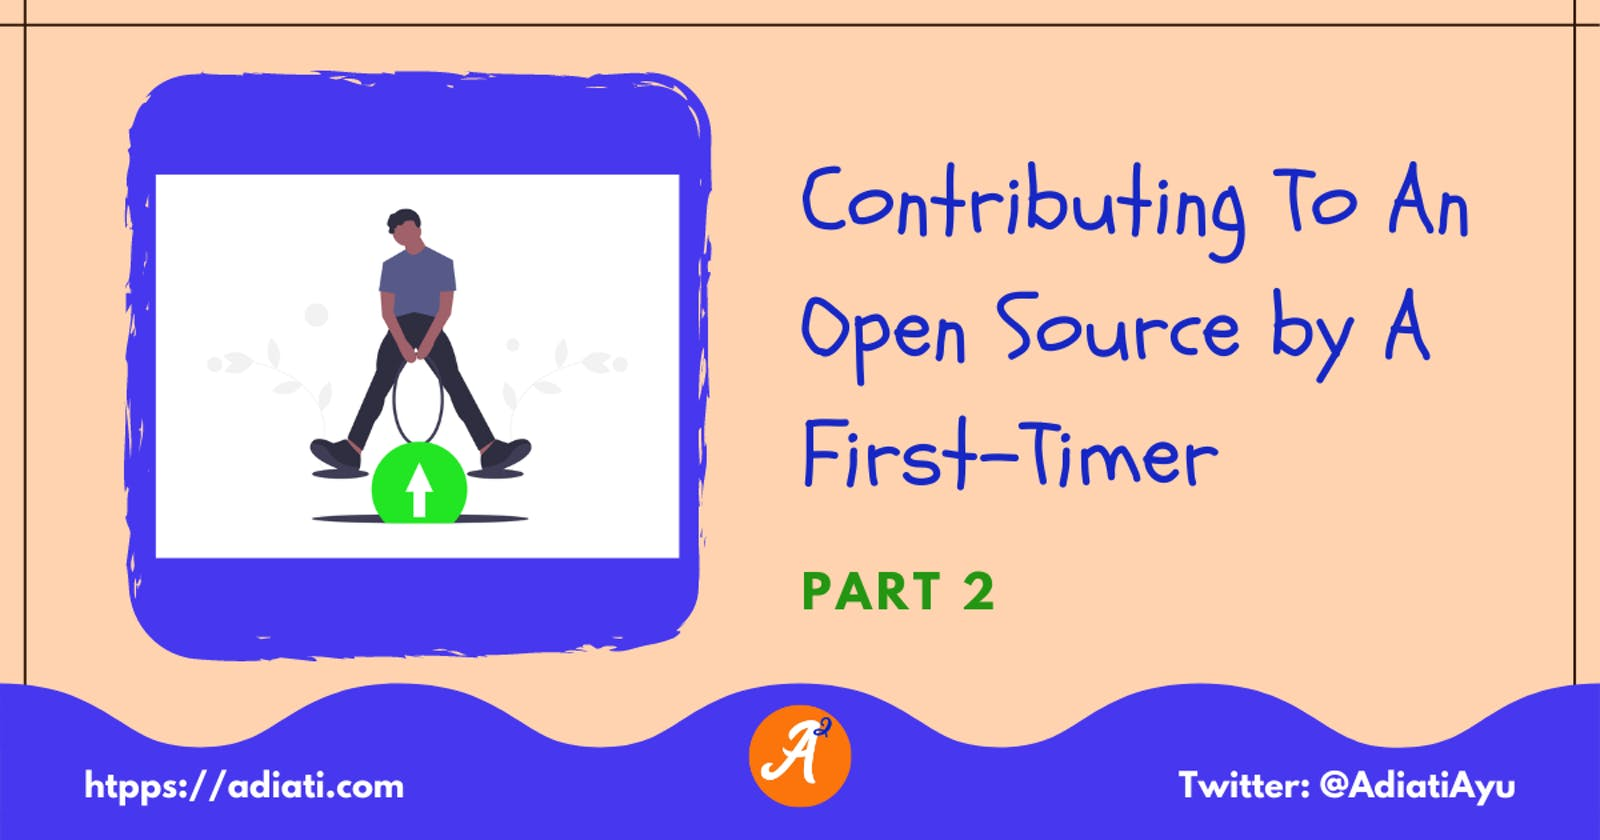 Contributing To An Open Source by A First-Timer (Part 2)